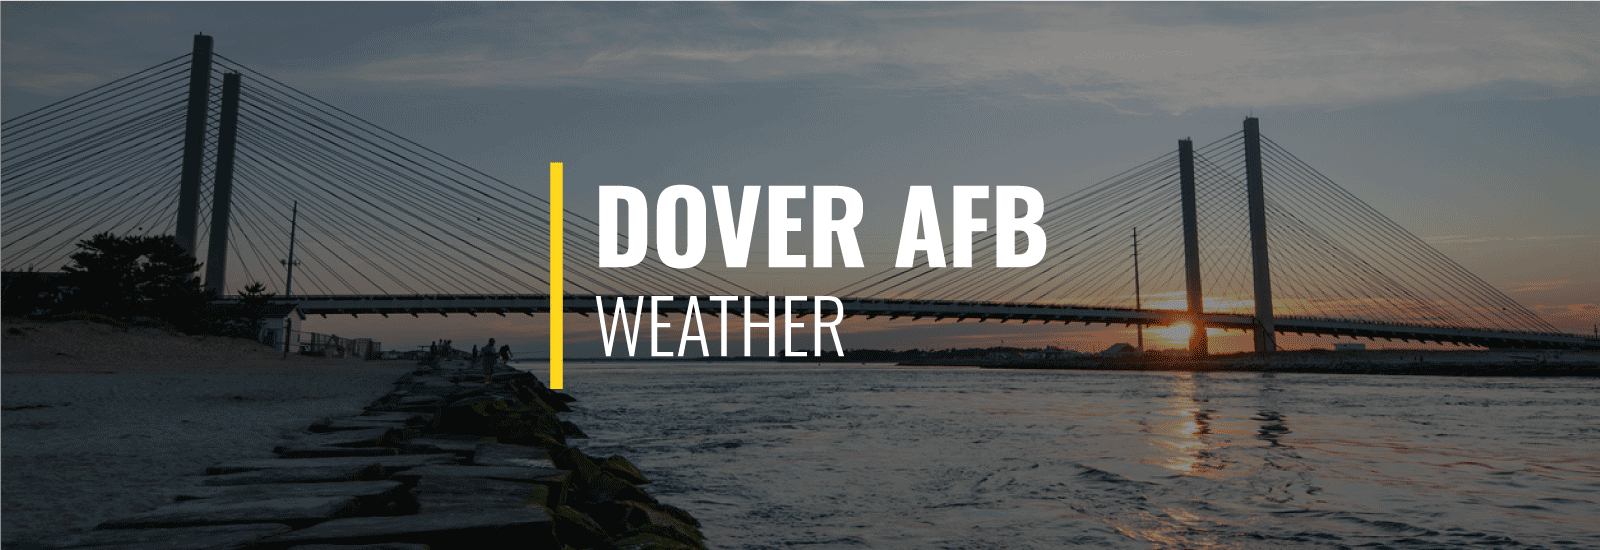 Dover AFB Weather